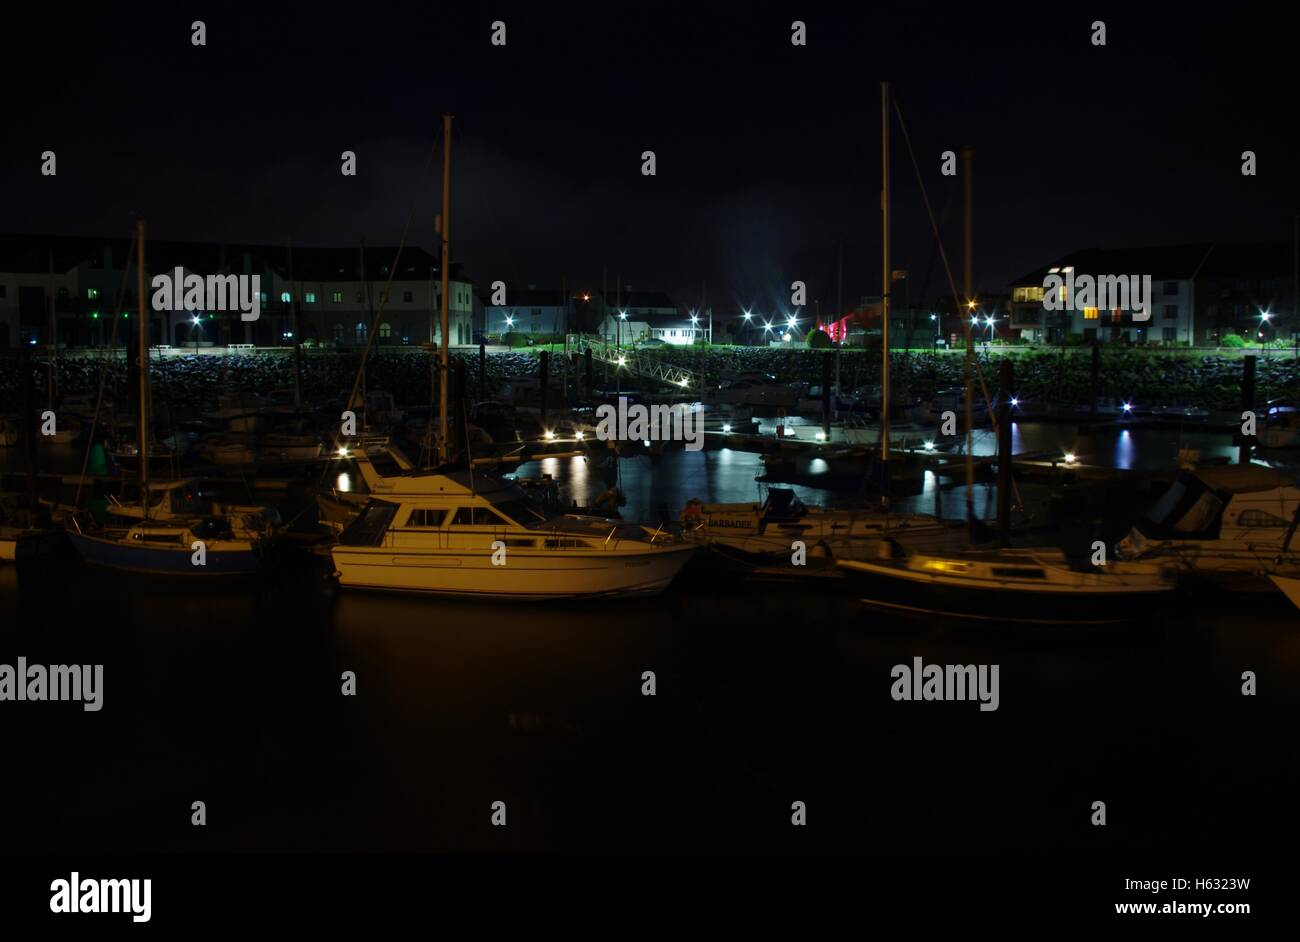 View overlooking Aberystwyth Harbour / Marina at night facing towards Y Lanfa, Trefechen, shot taken with long exposure. - Stock Image